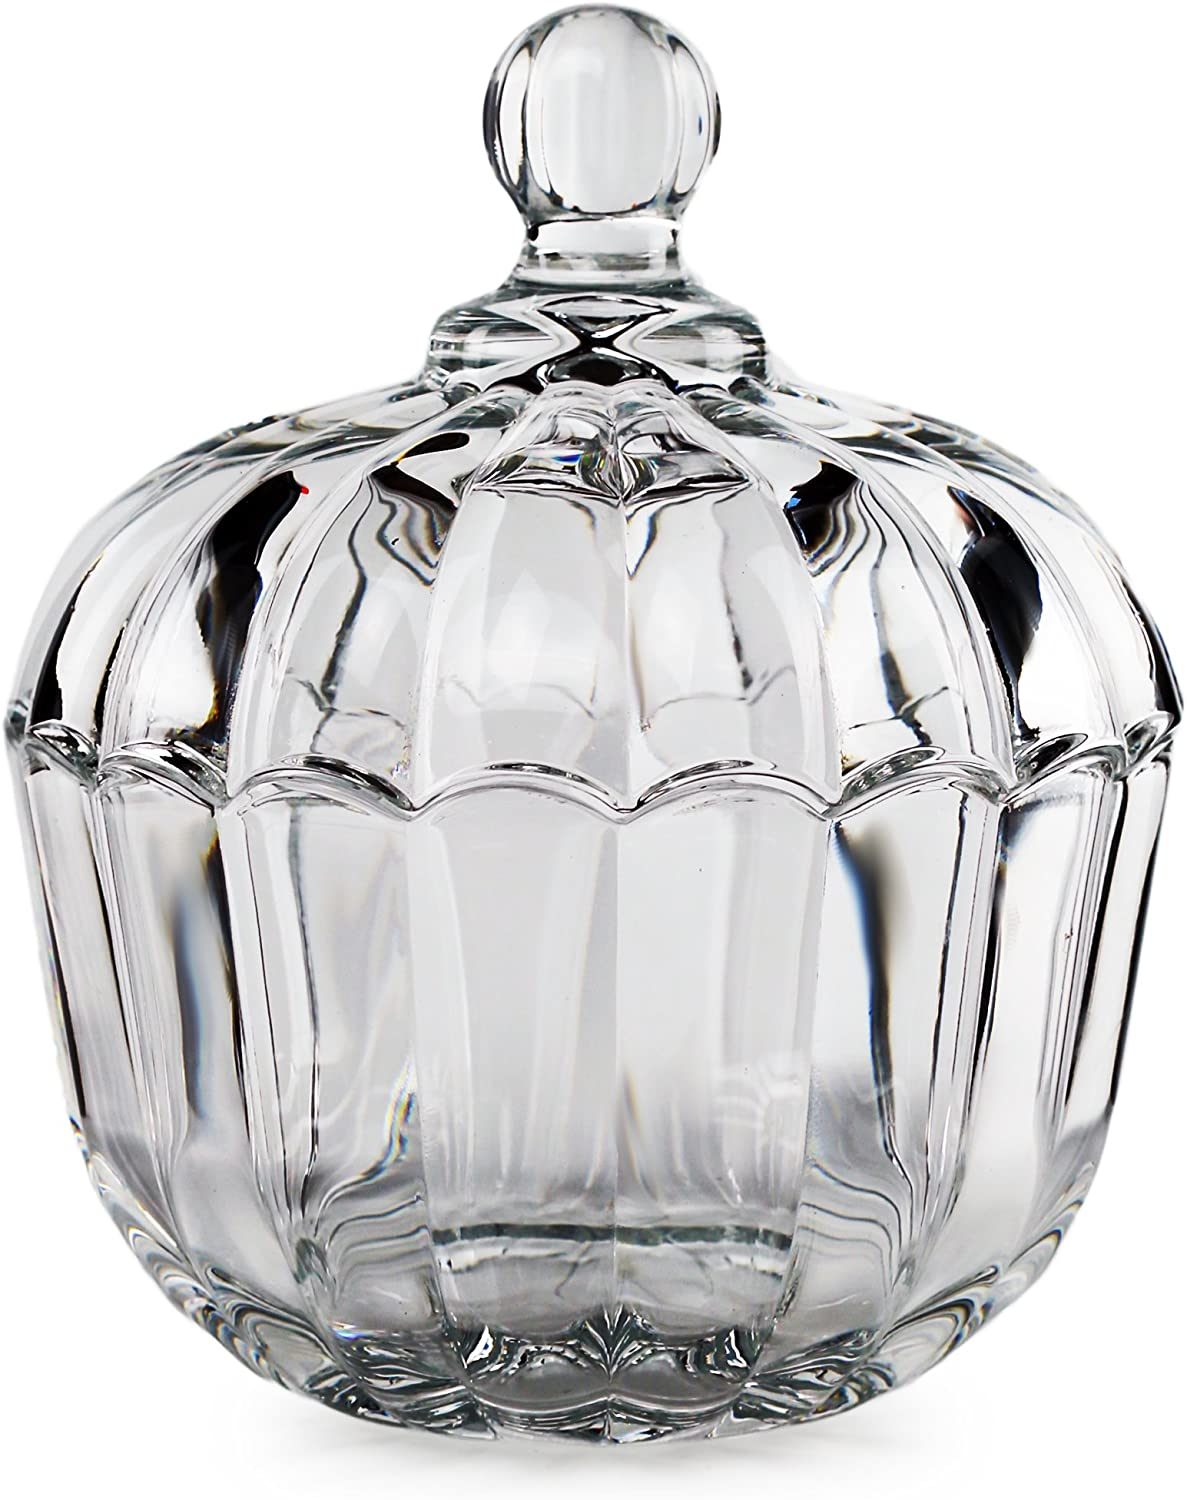 "Circleware 57207 Jubilee - Clear Candy Dish with Cover, 4.65"" x 5.91"","